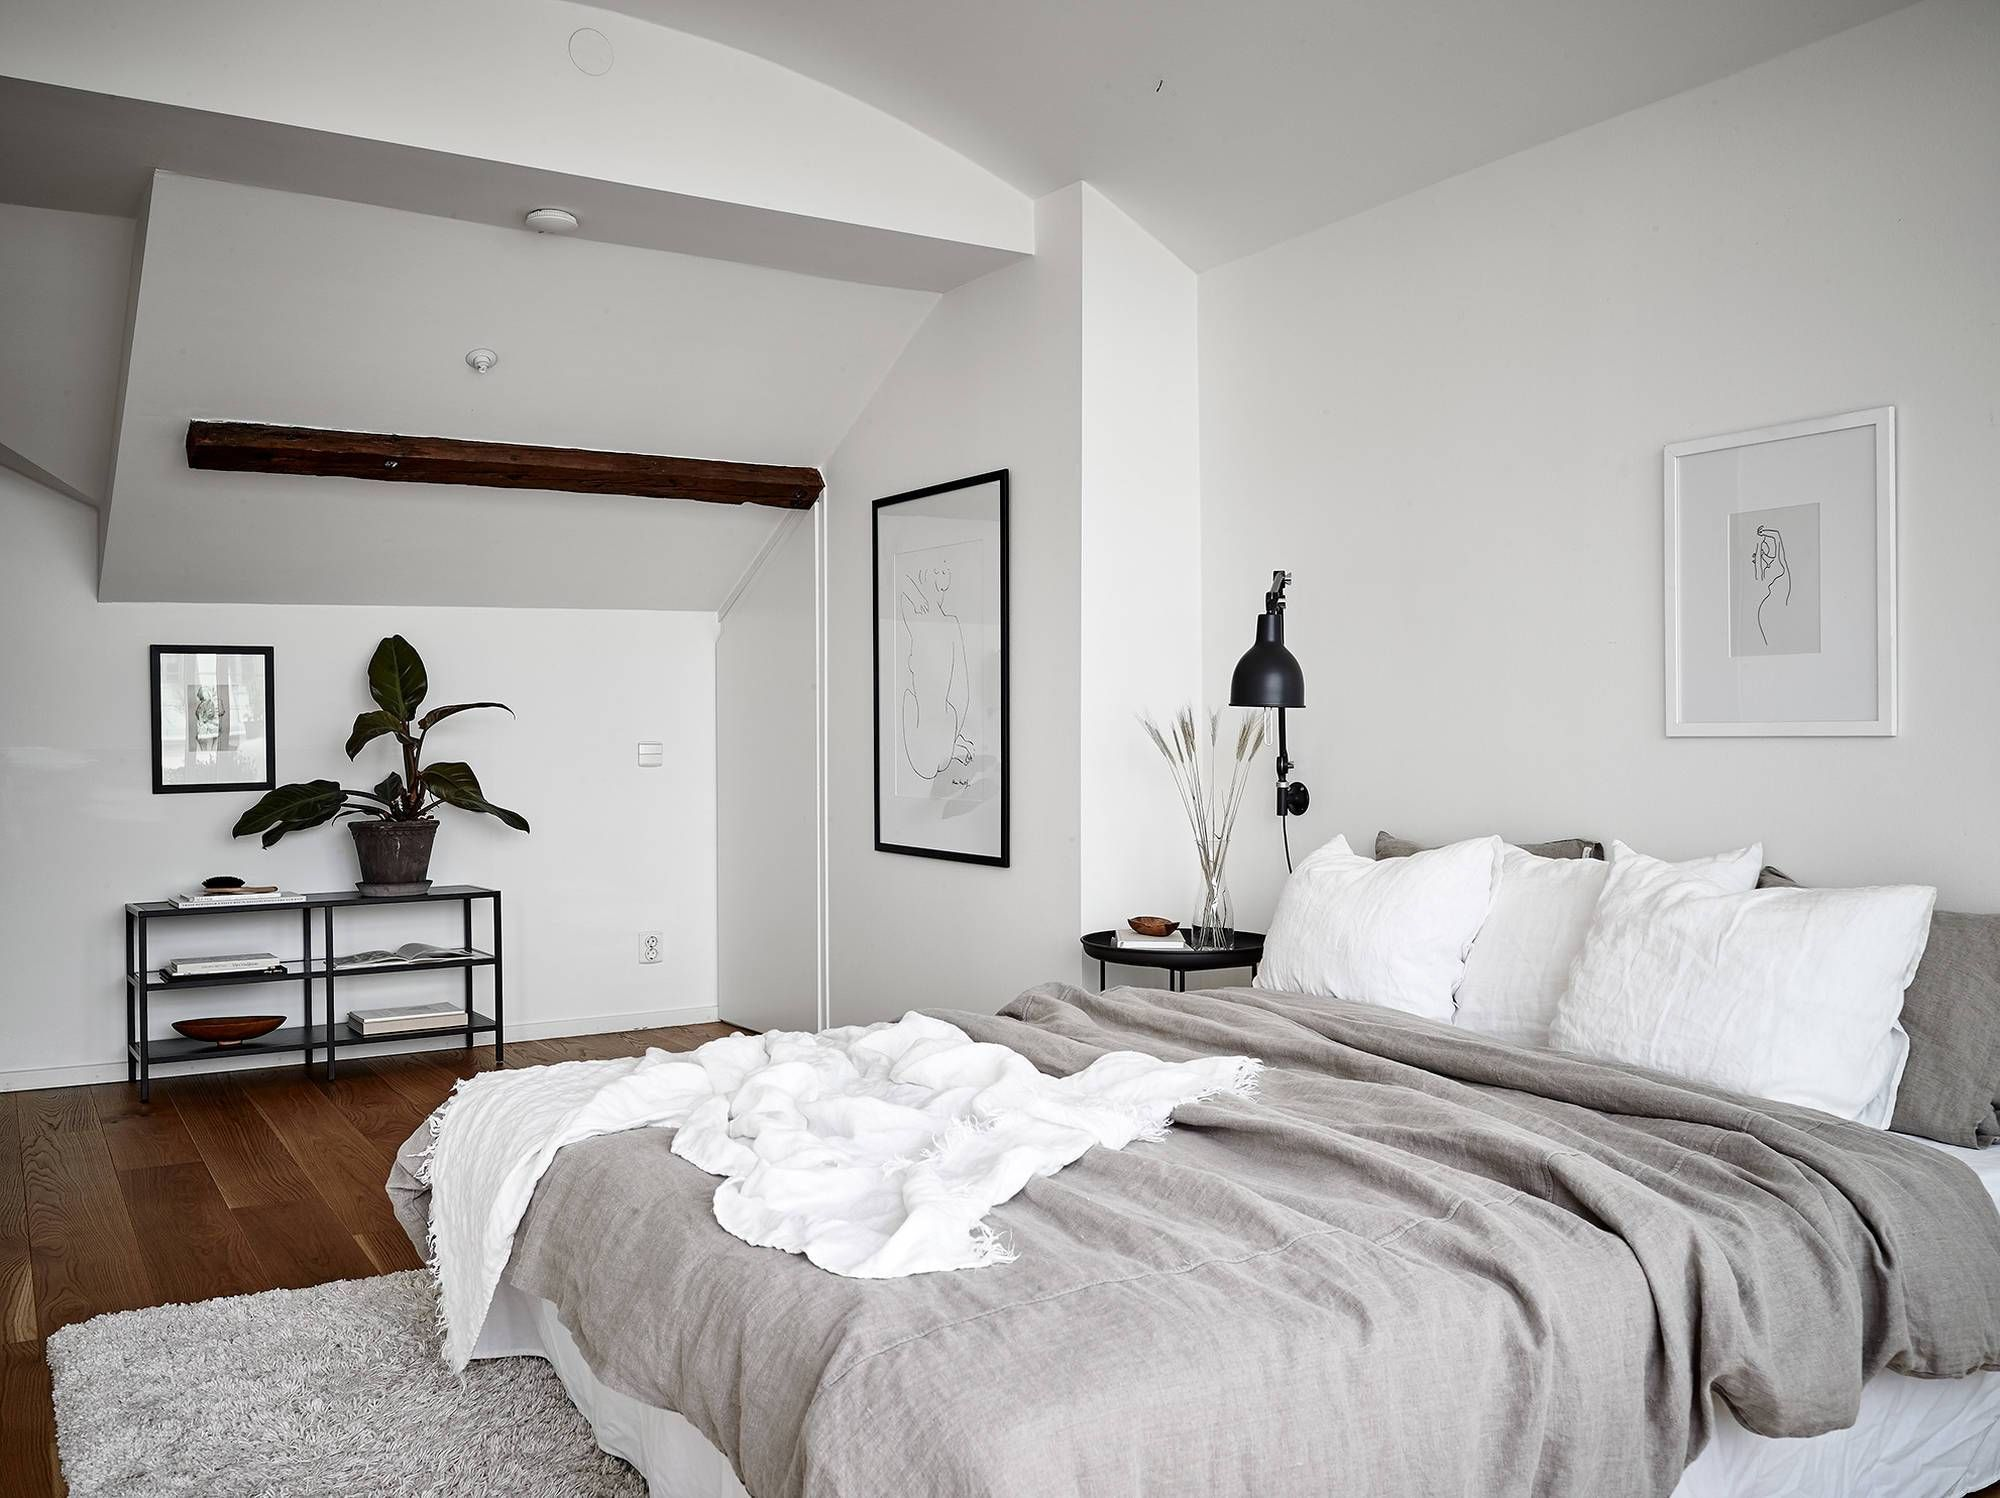 , Neutral bedroom with a balcony view – COCO LAPINE DESIGN, My Babies Blog 2020, My Babies Blog 2020